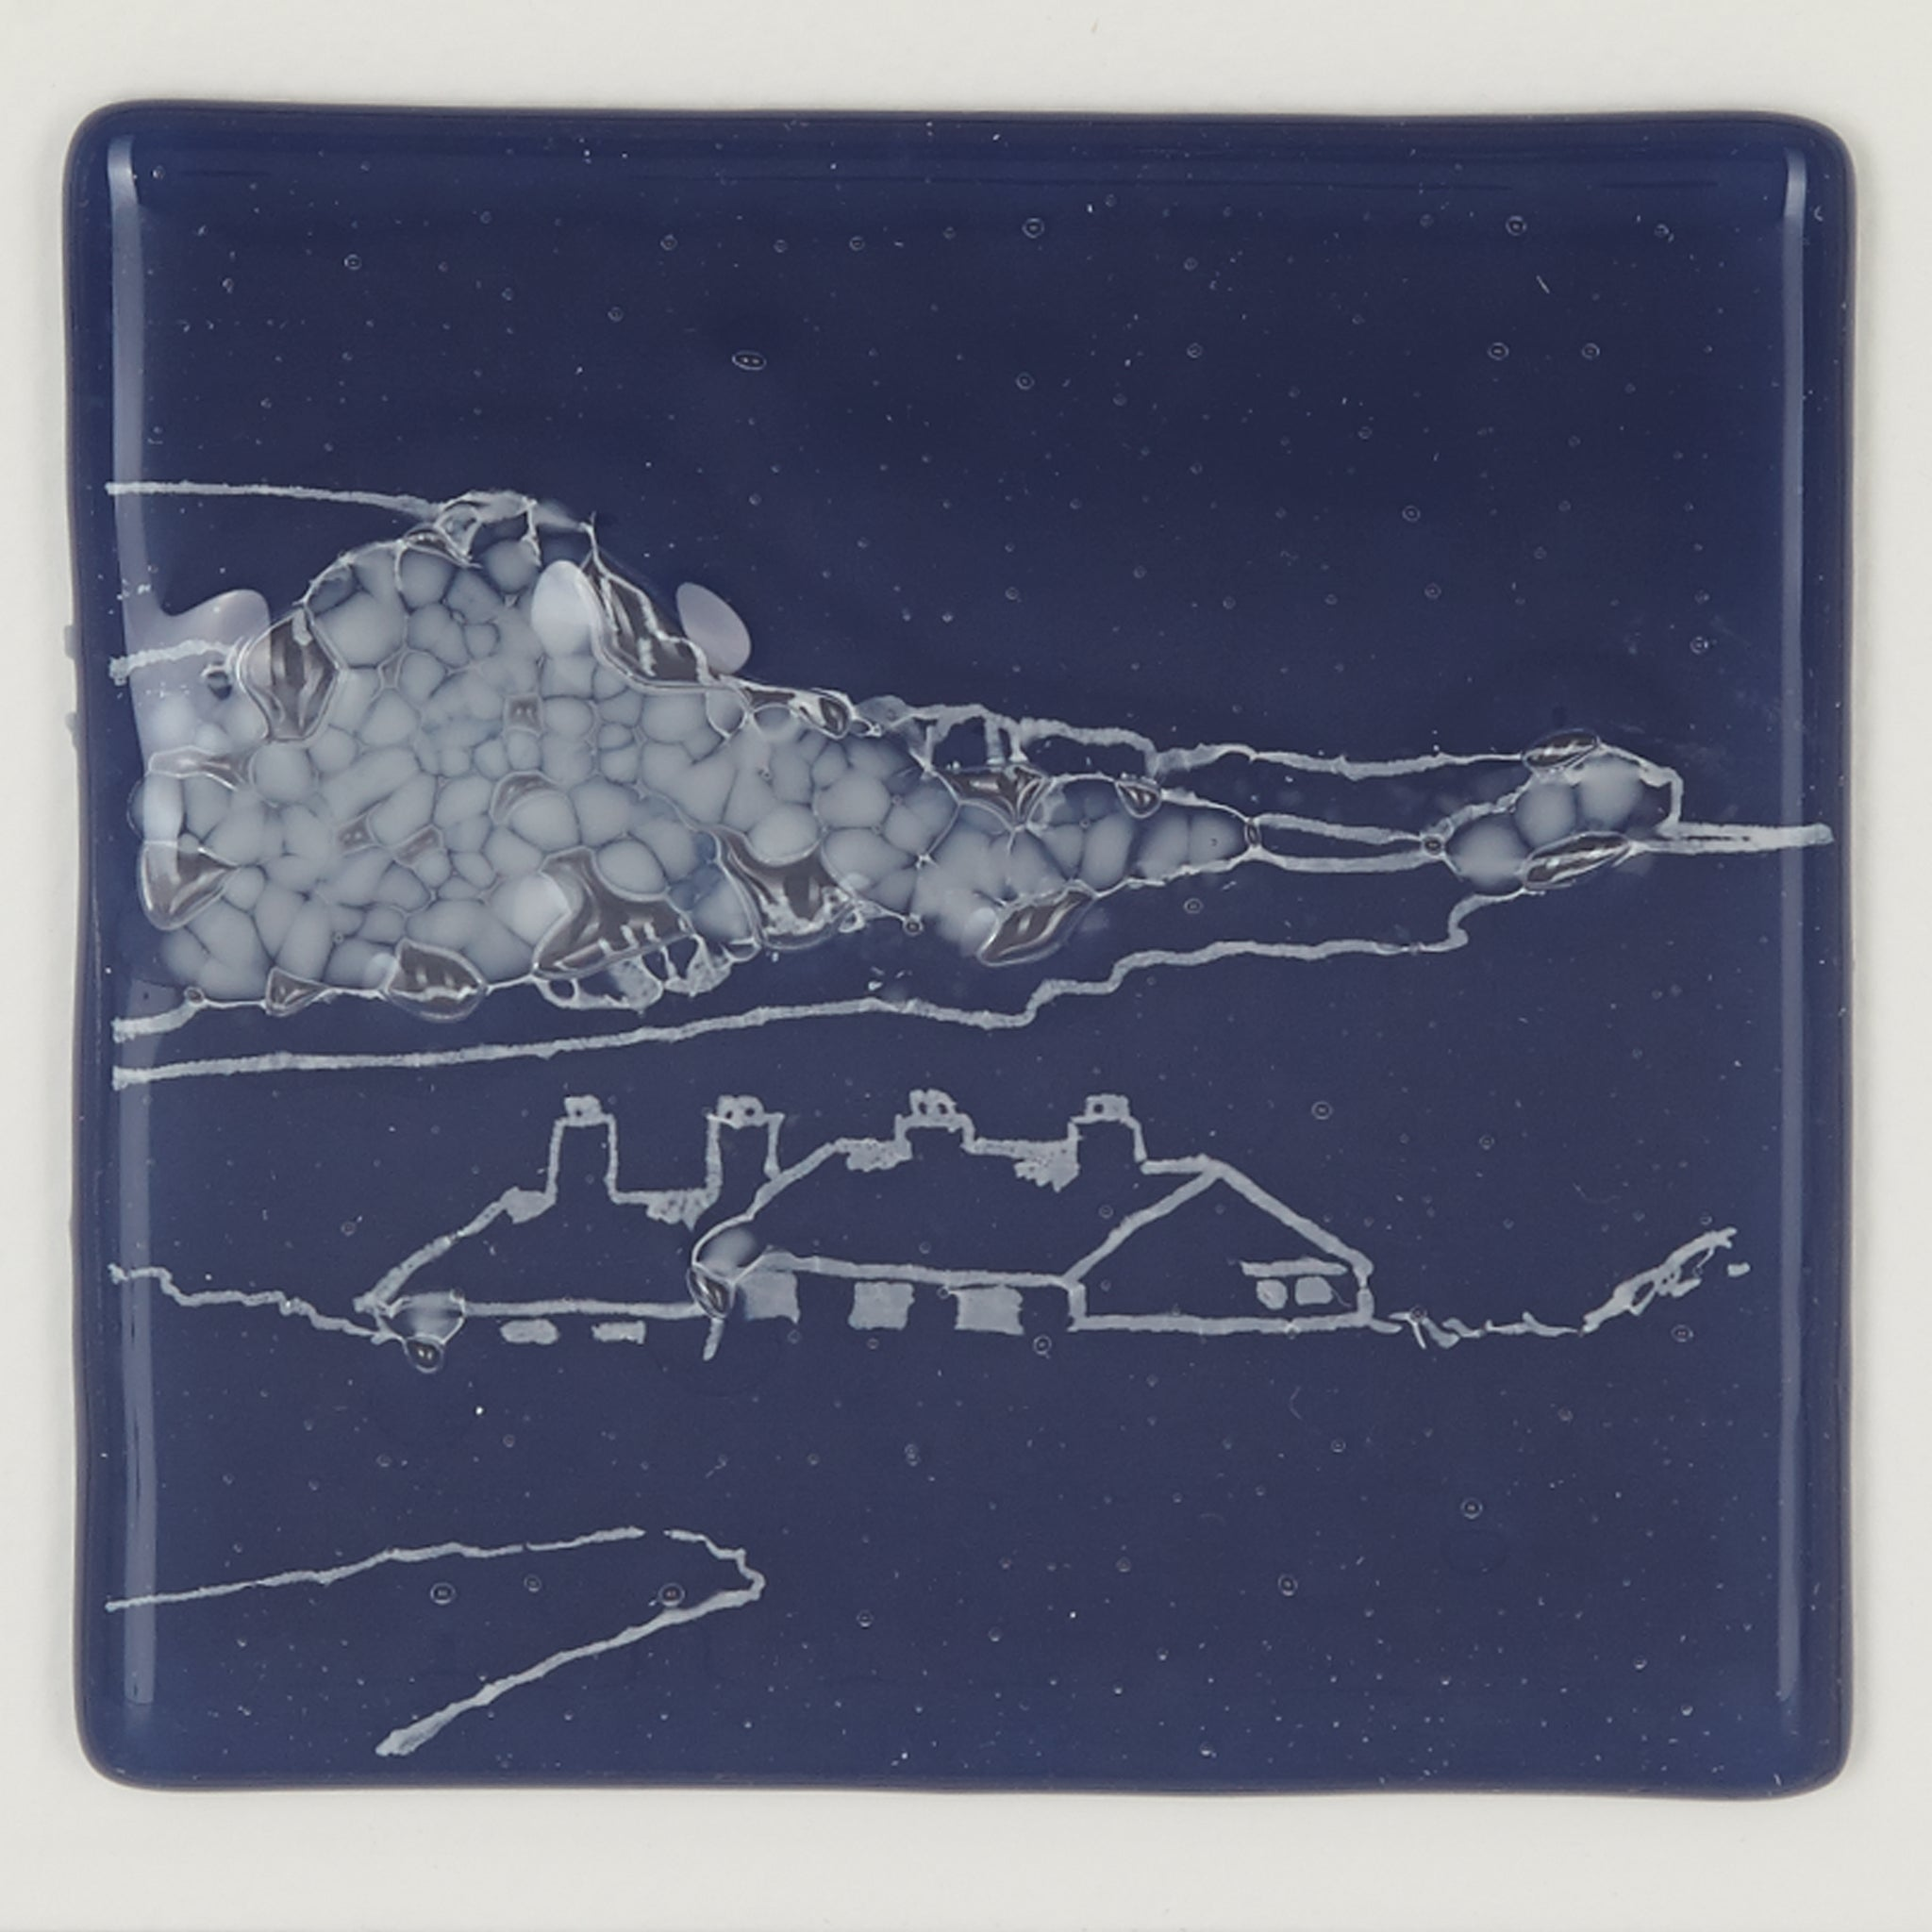 Cuckmere Haven Glass Coaster, White Cliffs